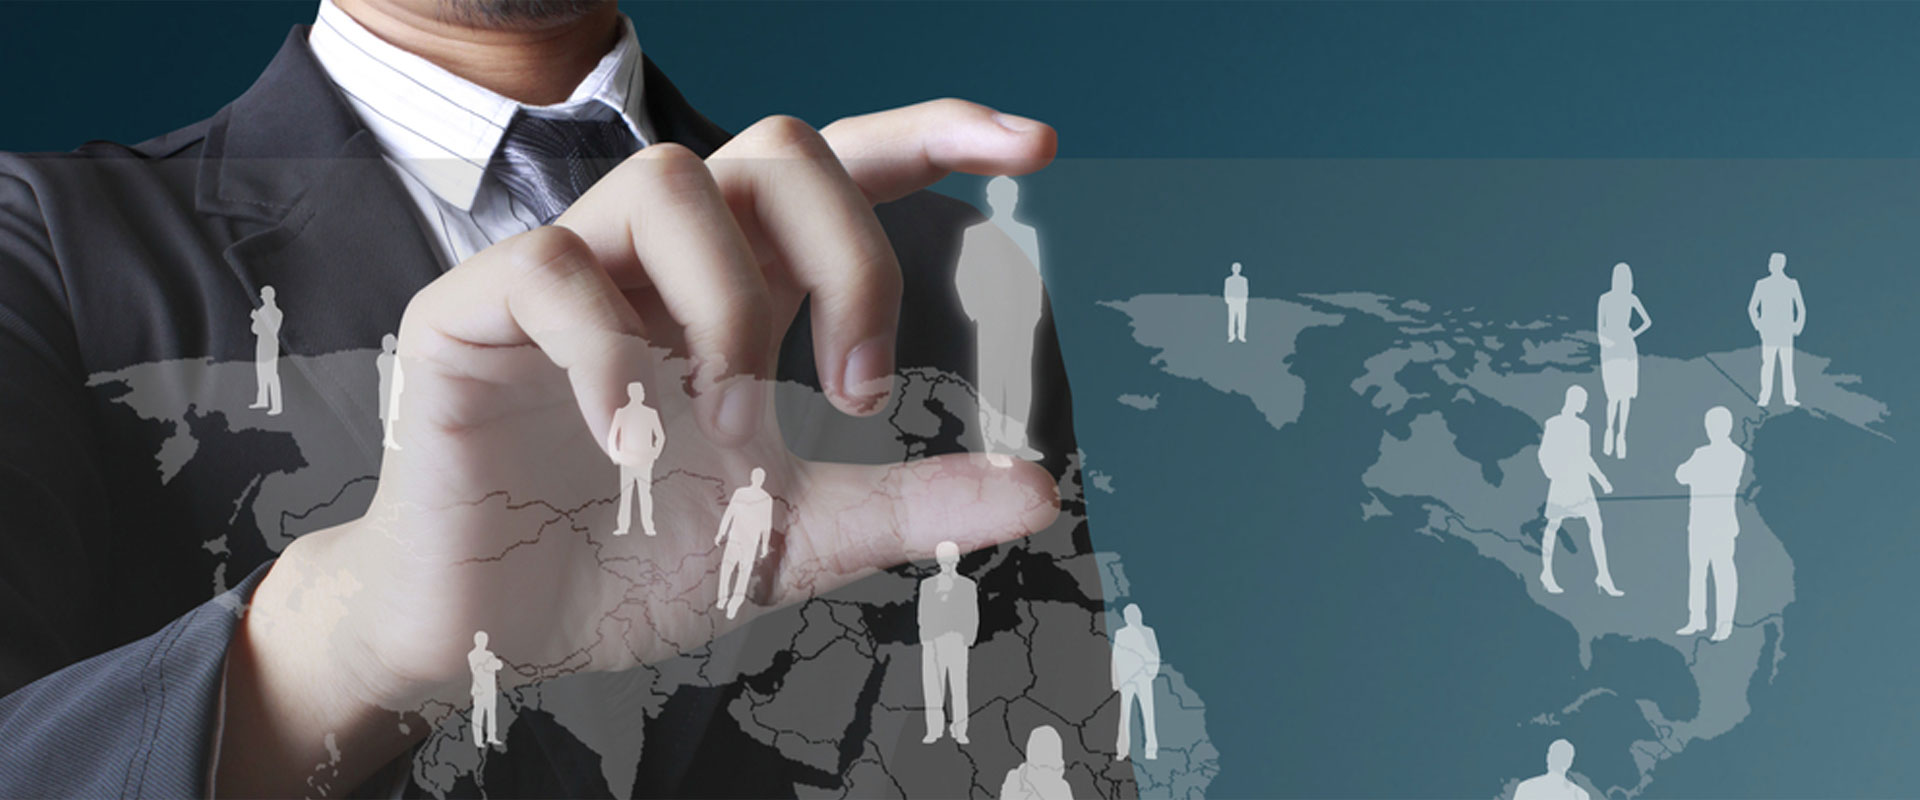 Look for the best UK payroll outsourcing provider